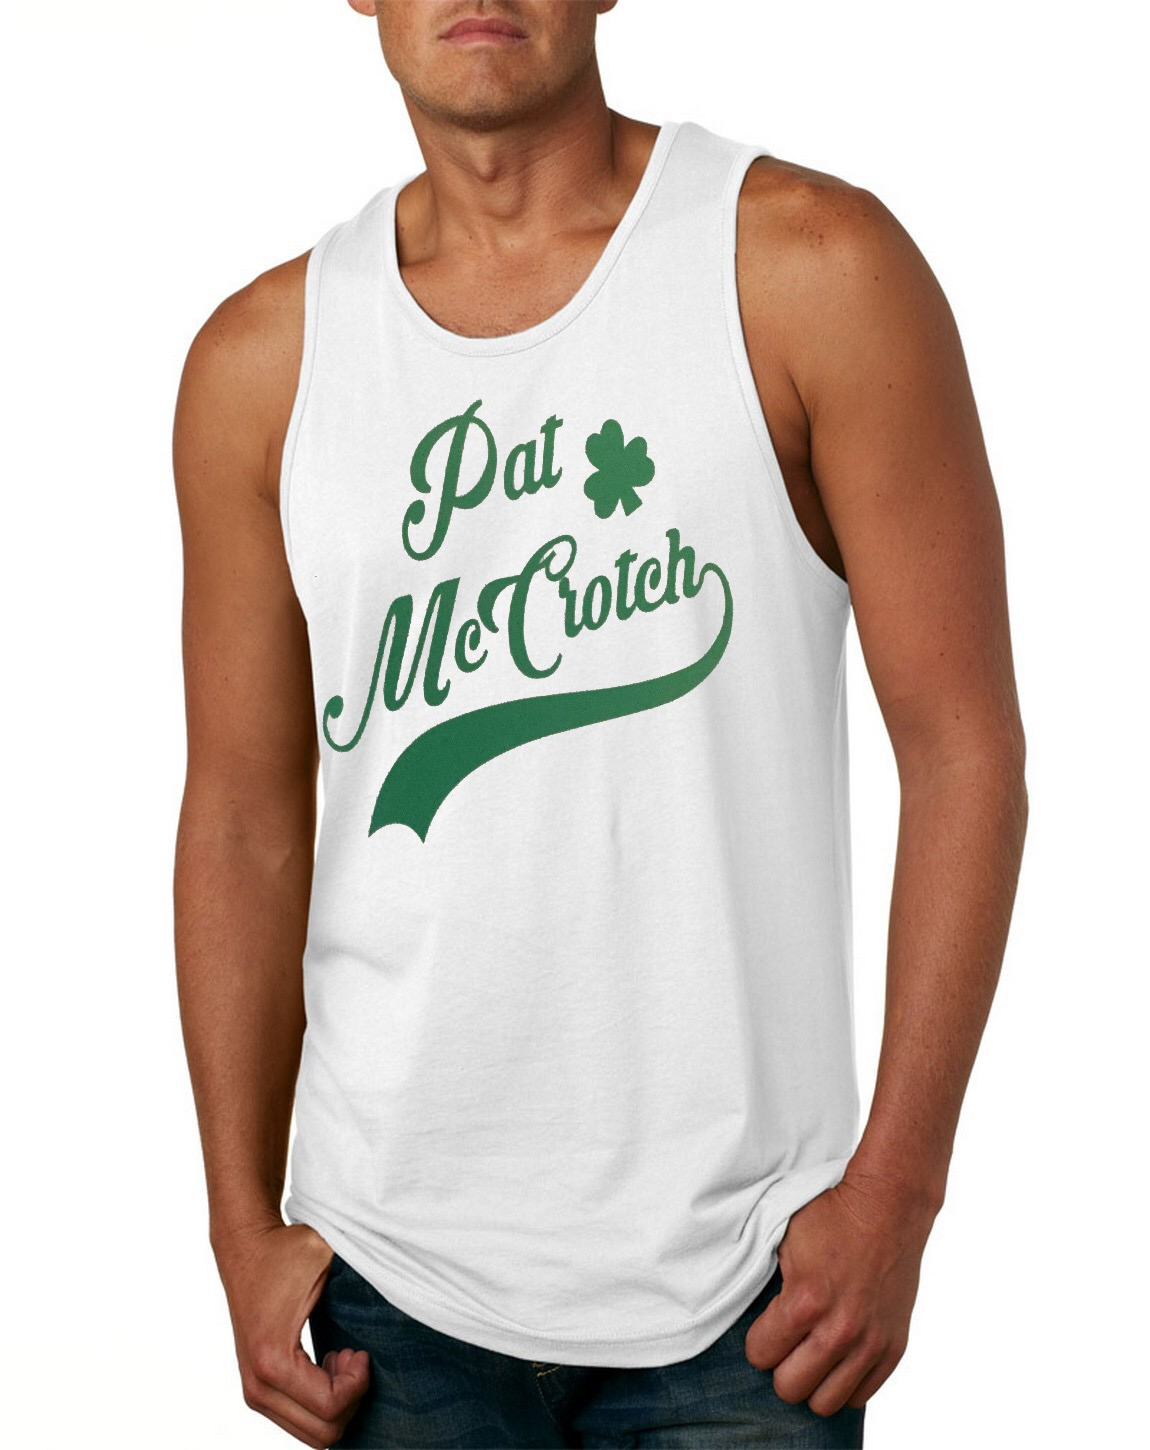 Pat McCrotch.  Men's Tank Top